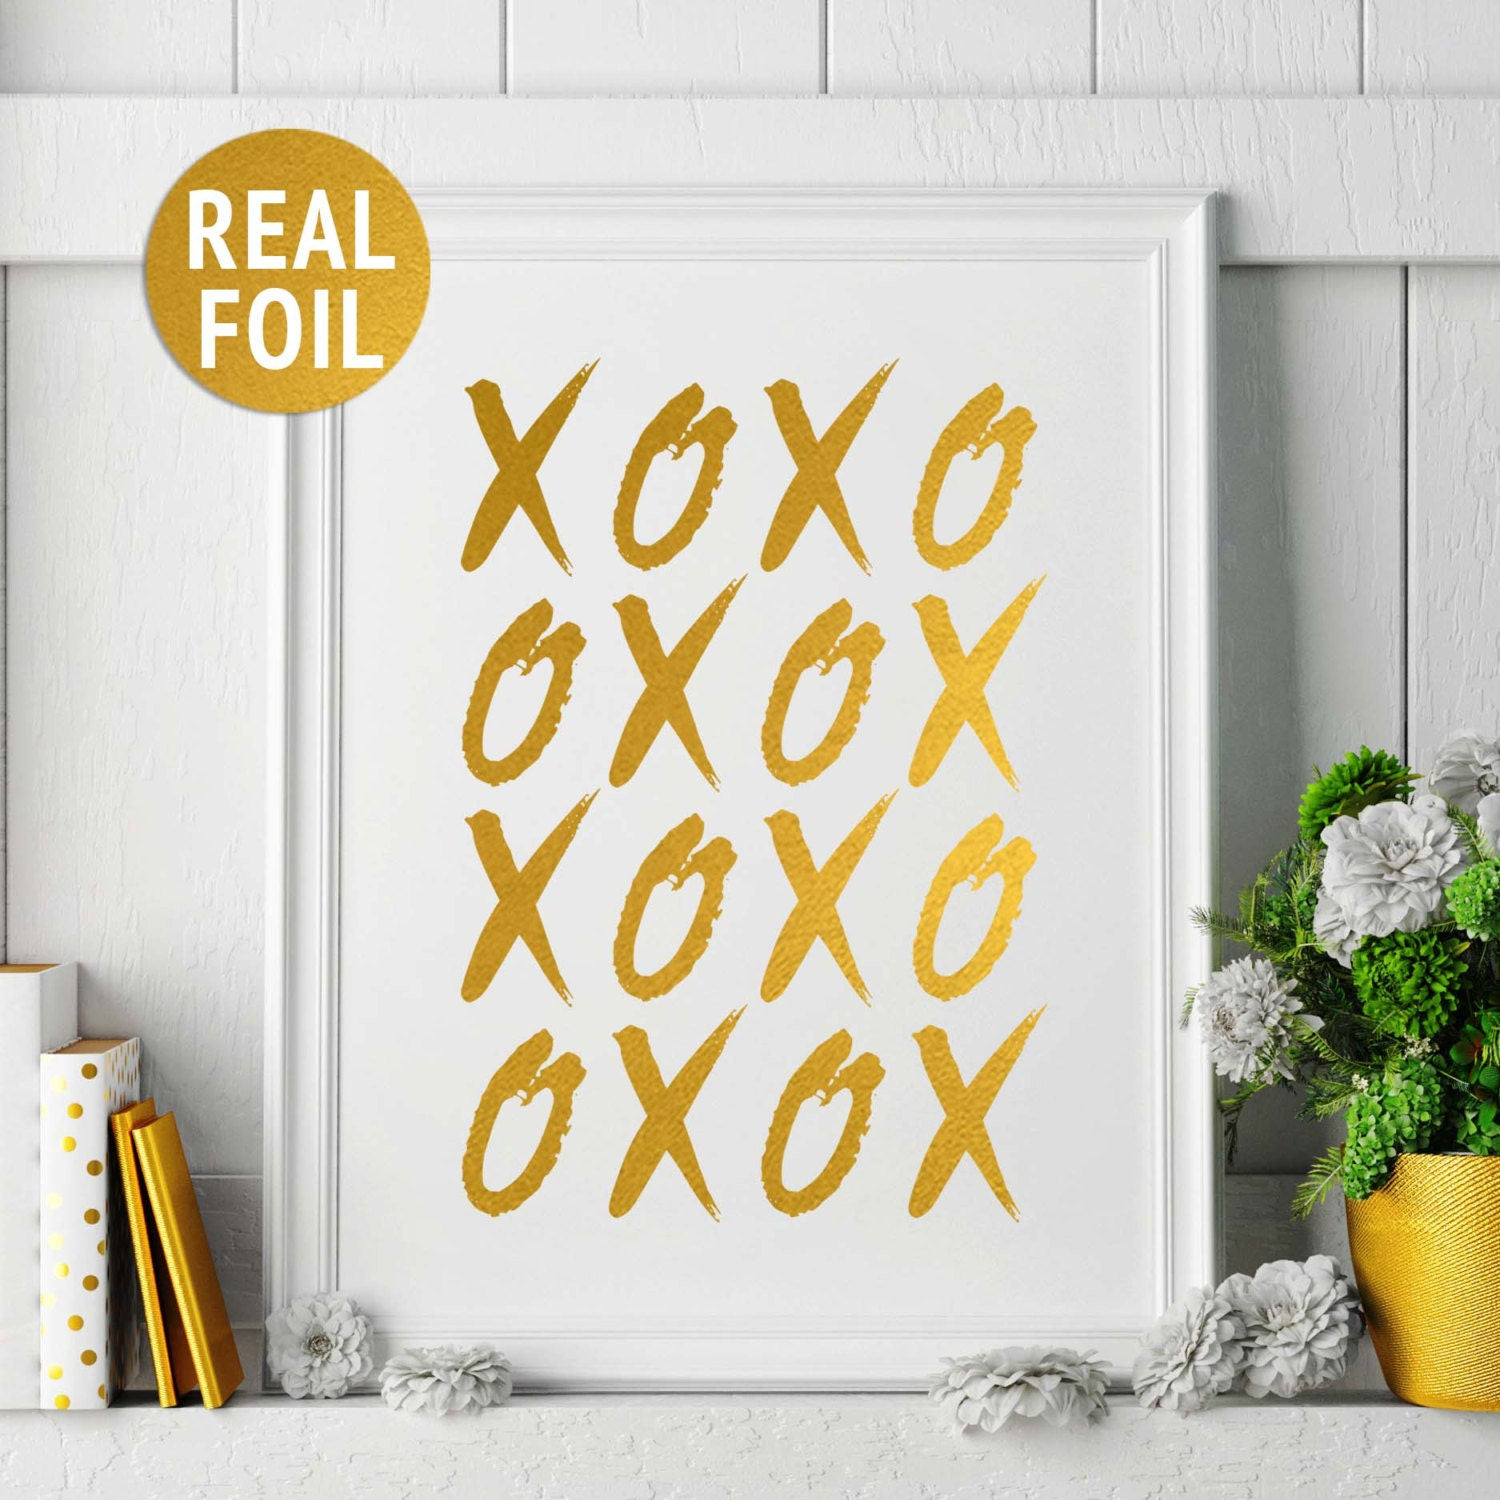 Stunning Xo Wall Decor Pictures Inspiration - The Wall Art ...